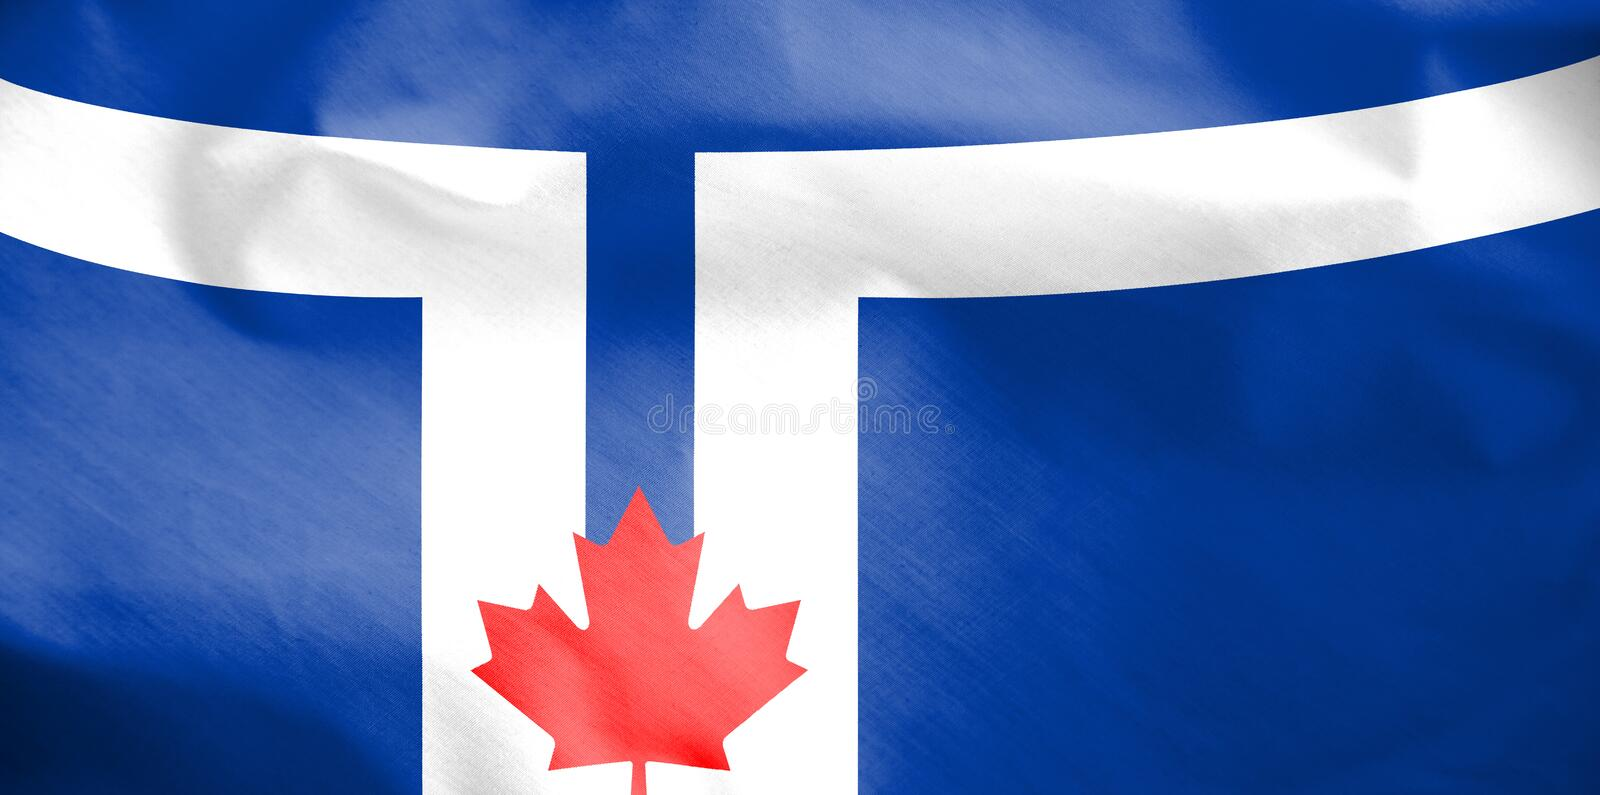 Flag of Toronto, Canada. royalty free illustration